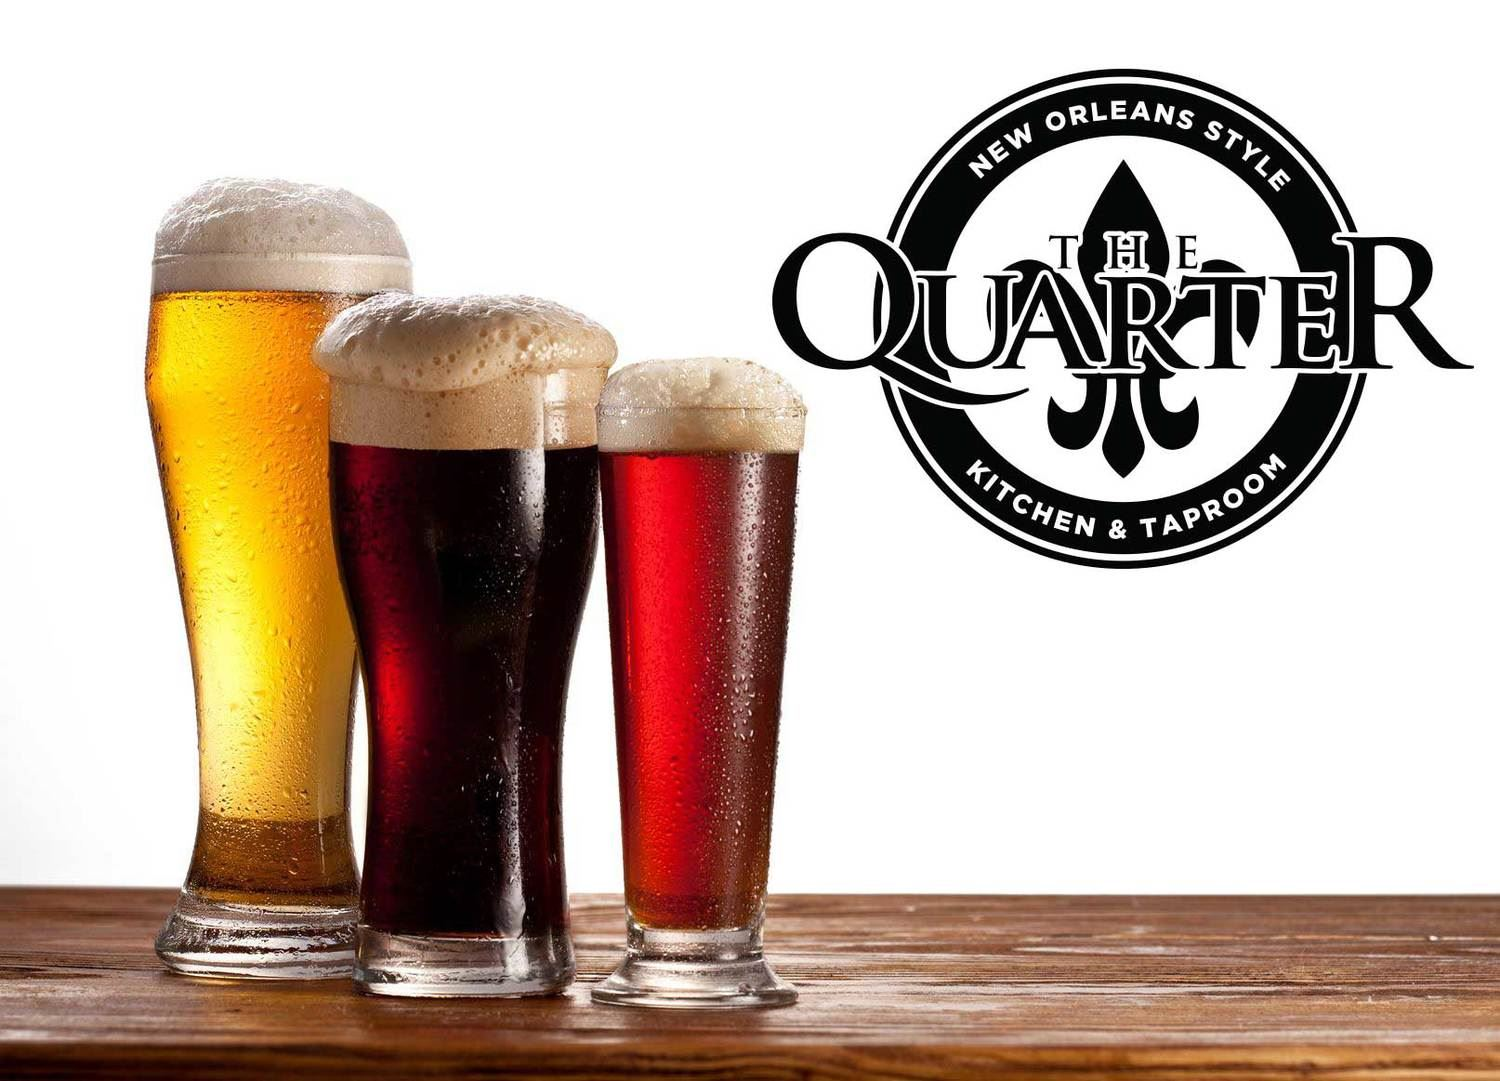 The Quarter Tap Room